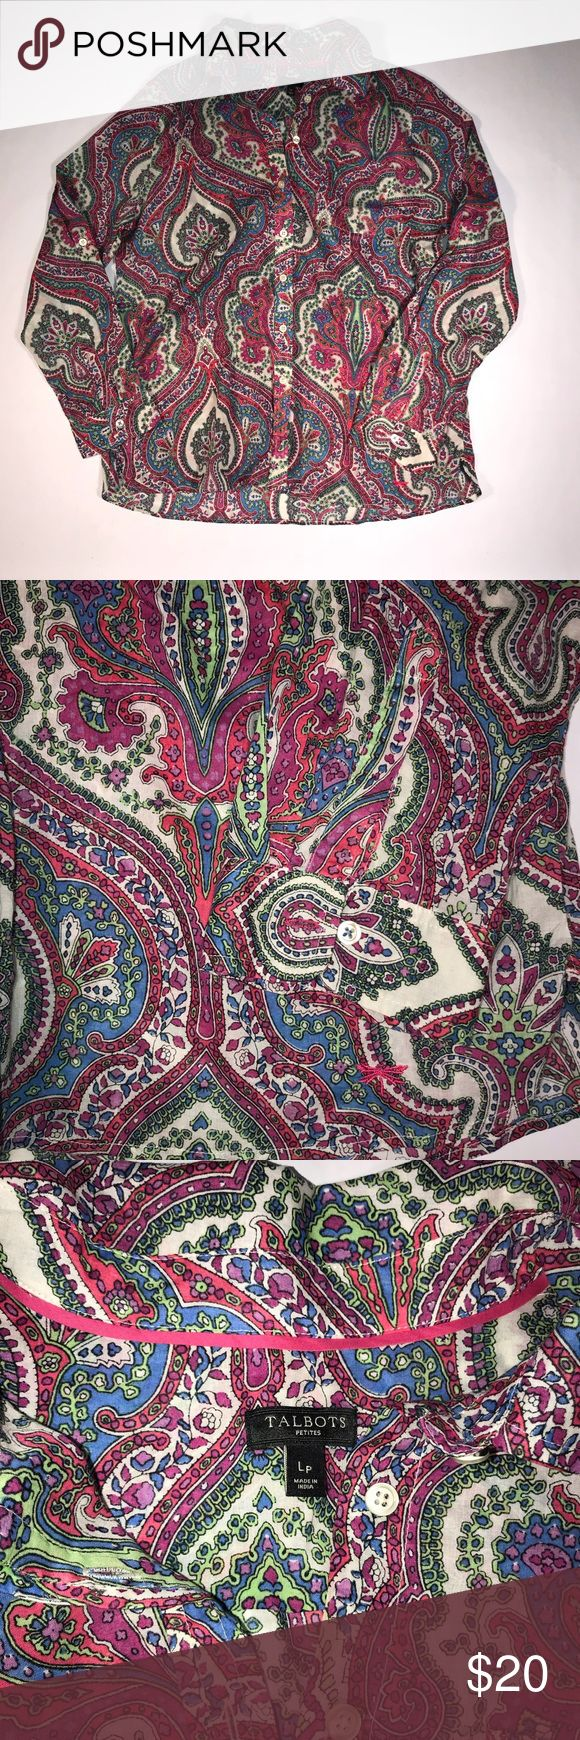 Talbots blouse (LP) Gorgeous color and patterned blouse by Talbots size LP. Excellent conditions. Talbots Tops Button Down Shirts